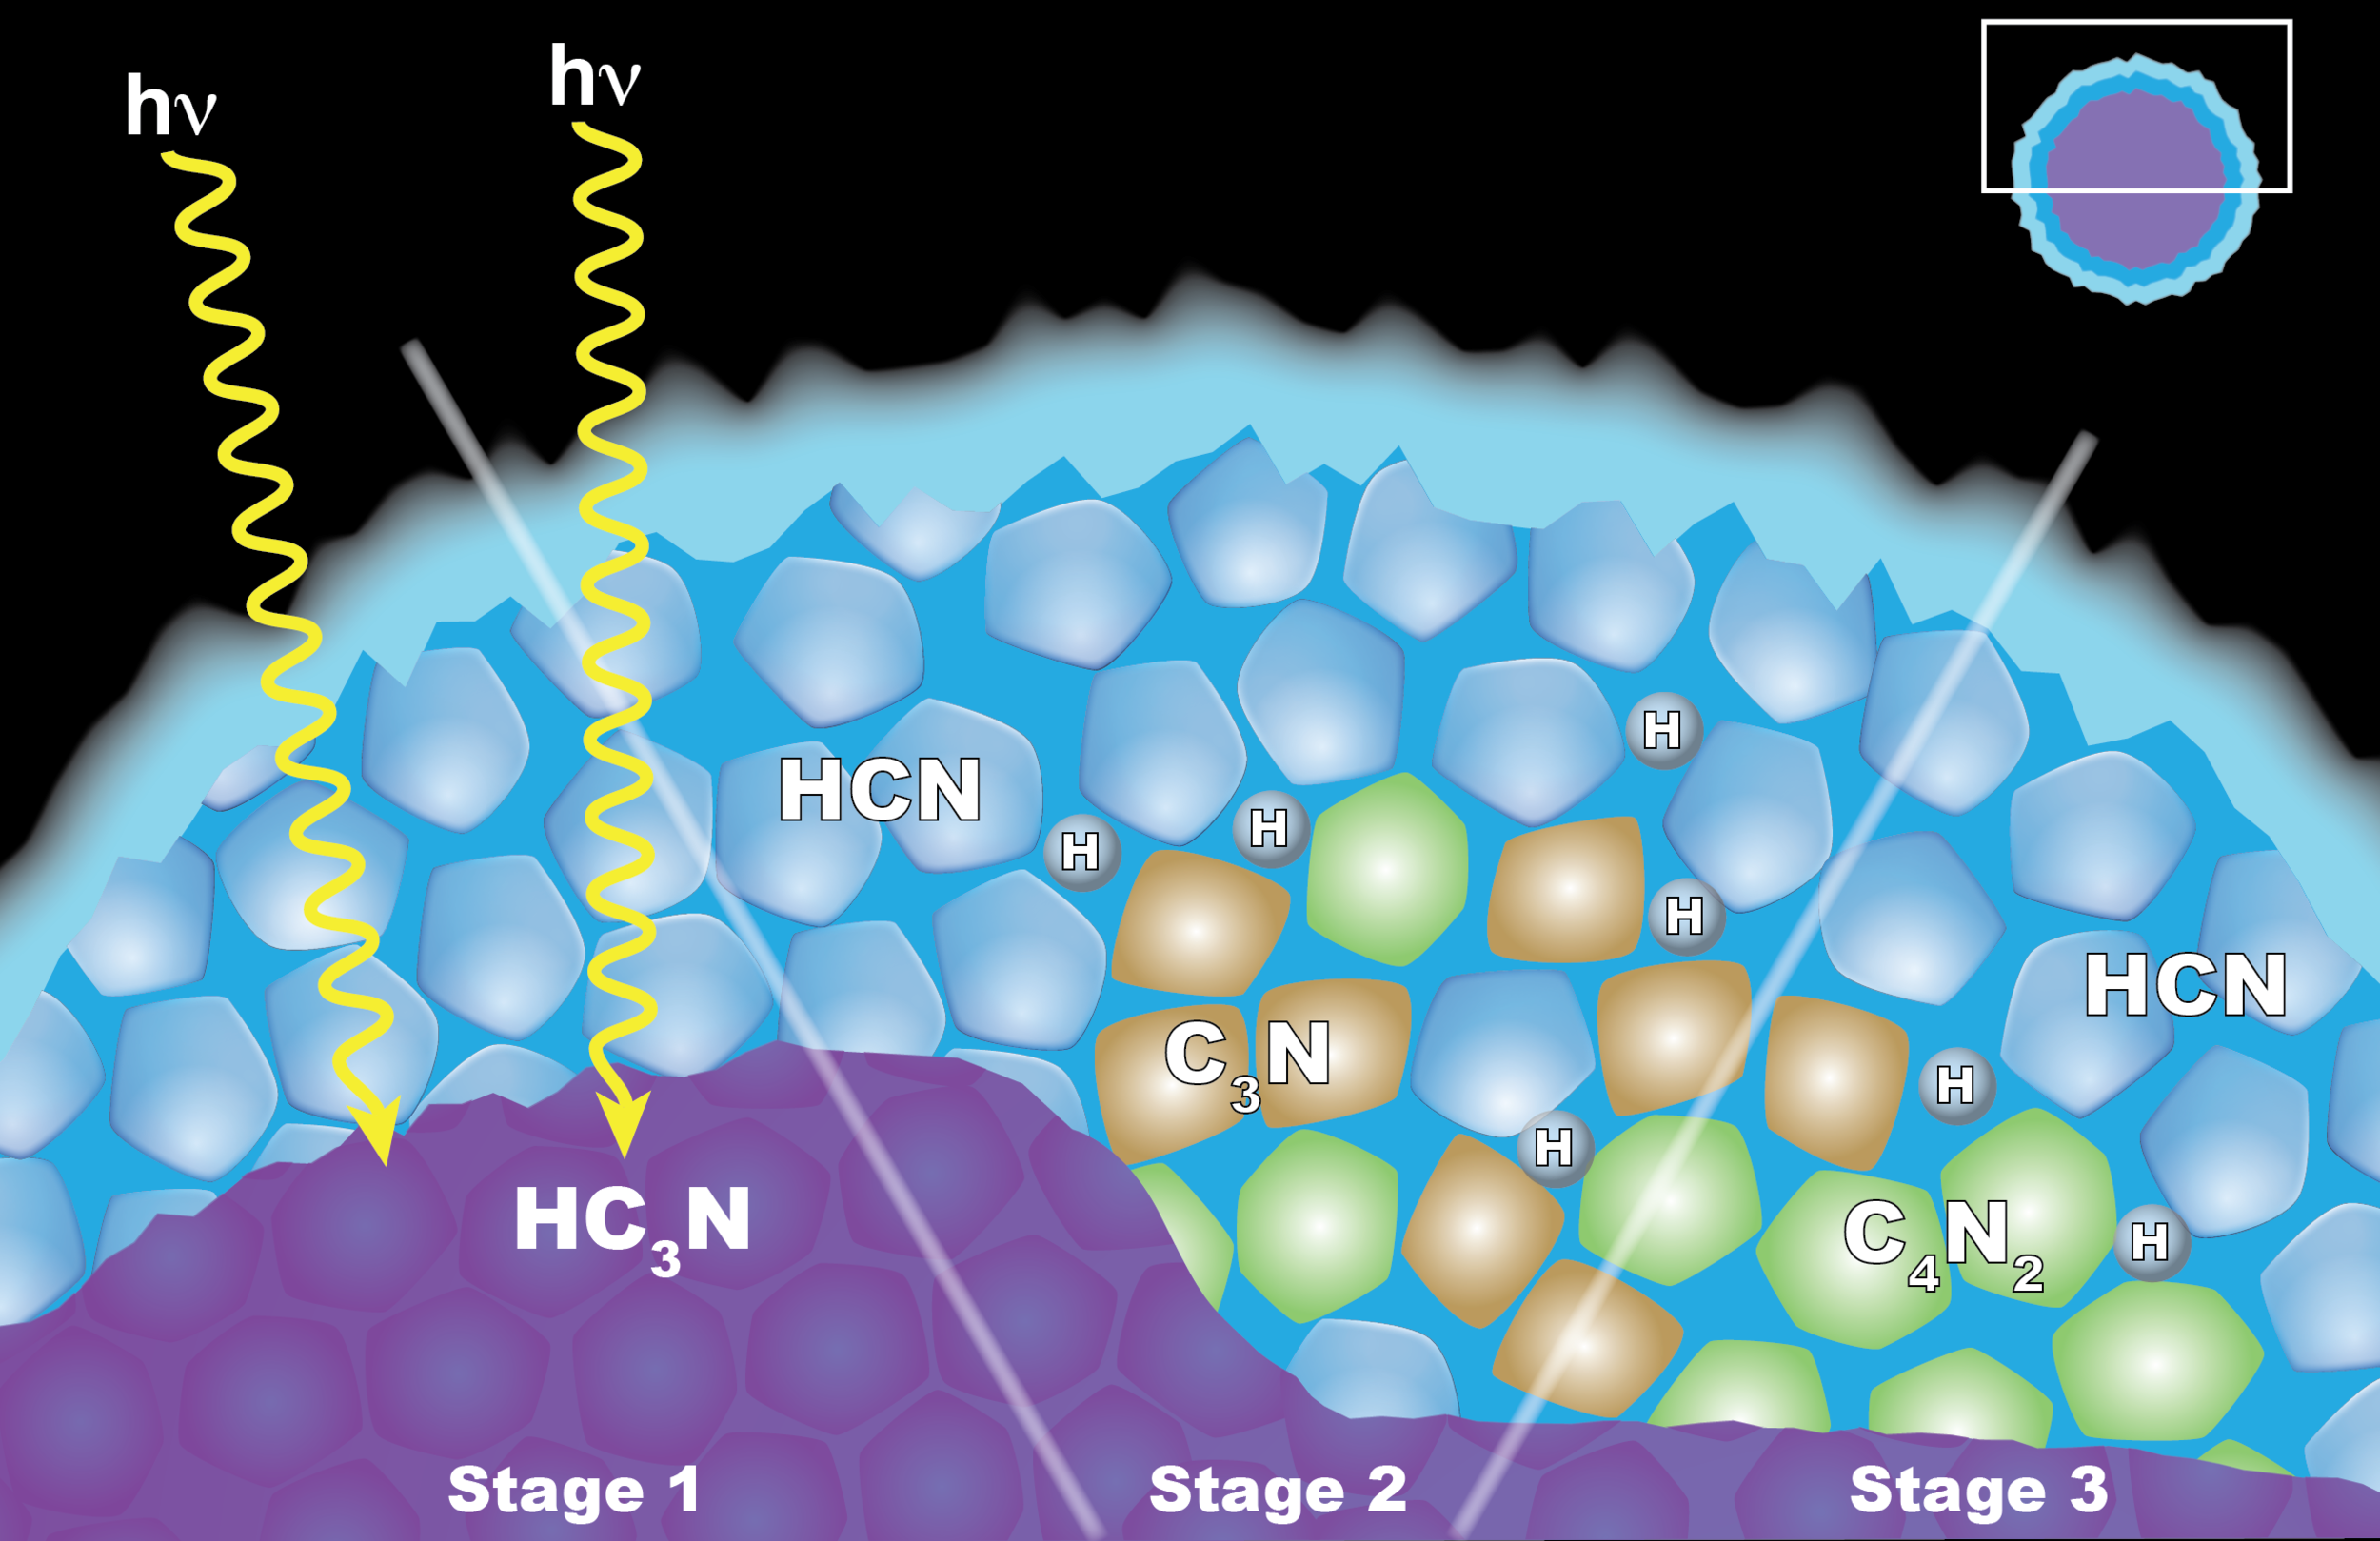 "Scientists from NASA's Cassini mission think the appearance of a cloud of dicyanoacetylene (C4N2) ice in Titan's stratosphere is explained by ""solid-state"" chemistry taking place inside ice particles. The particles have an inner layer of cyanoacetylene (HC3N) ice coated with an outer layer of hydrogen cyanide (HCN) ice. (Left) When a photon of light penetrates the outer shell, it can interact with the HC3N, producing C3N and H. (Center) The C3N then reacts with HCN to yield (right) C4N2 and H. Another reaction that also yields C4N2 ice and H also is possible, but less likely. - Image    Credits: NASA's Goddard Space Flight Center"